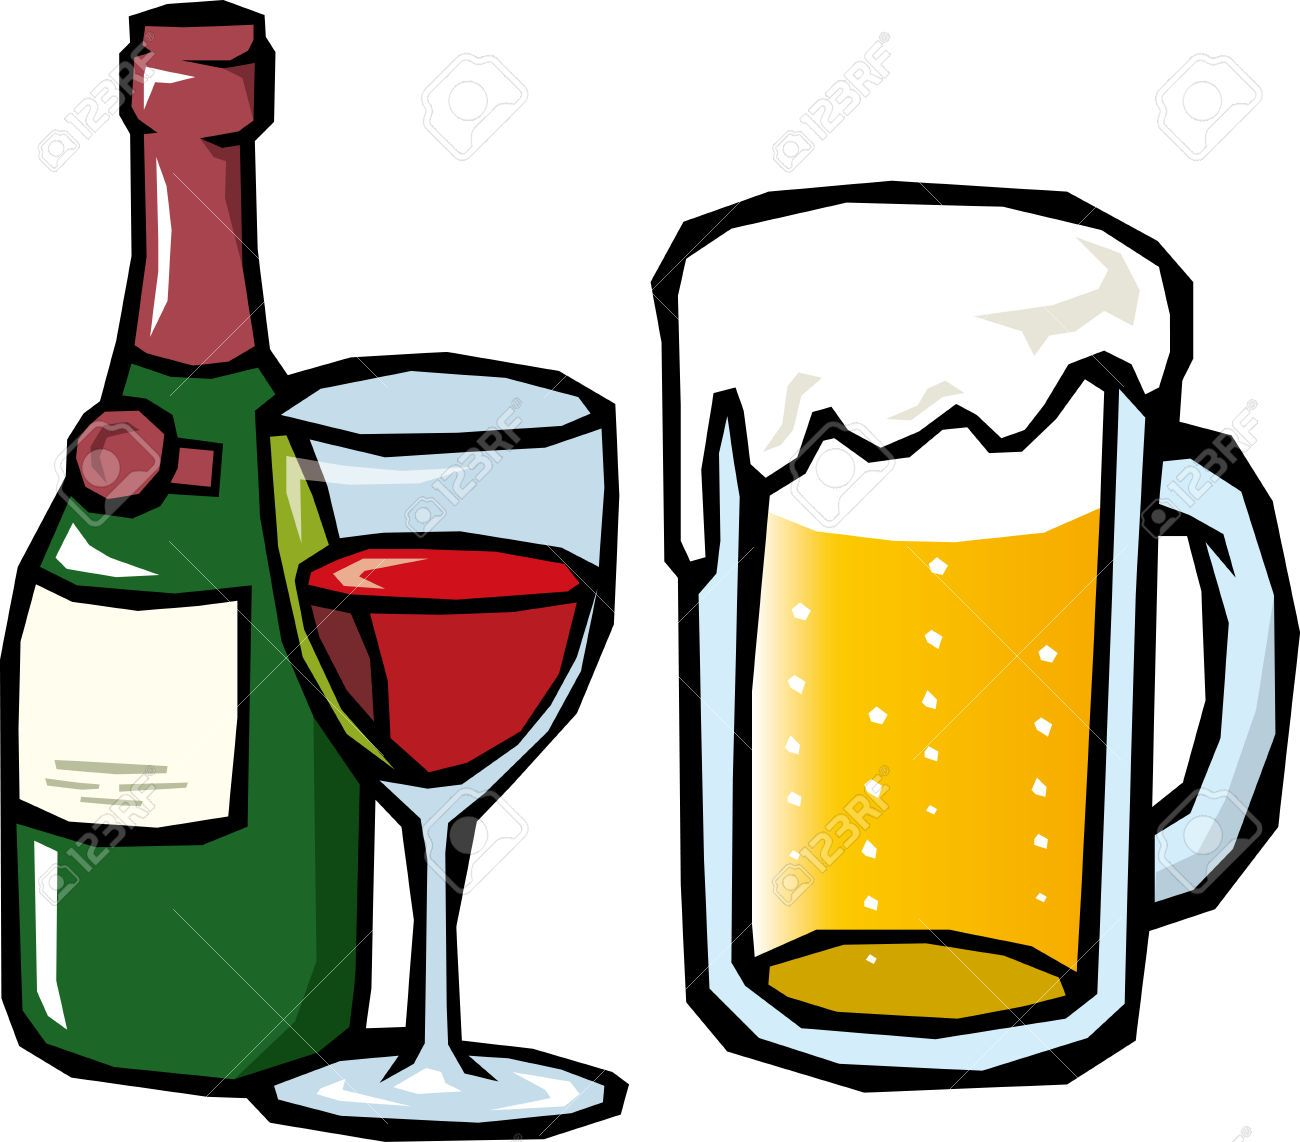 Free clipart images one beer mug red. Clip art black and